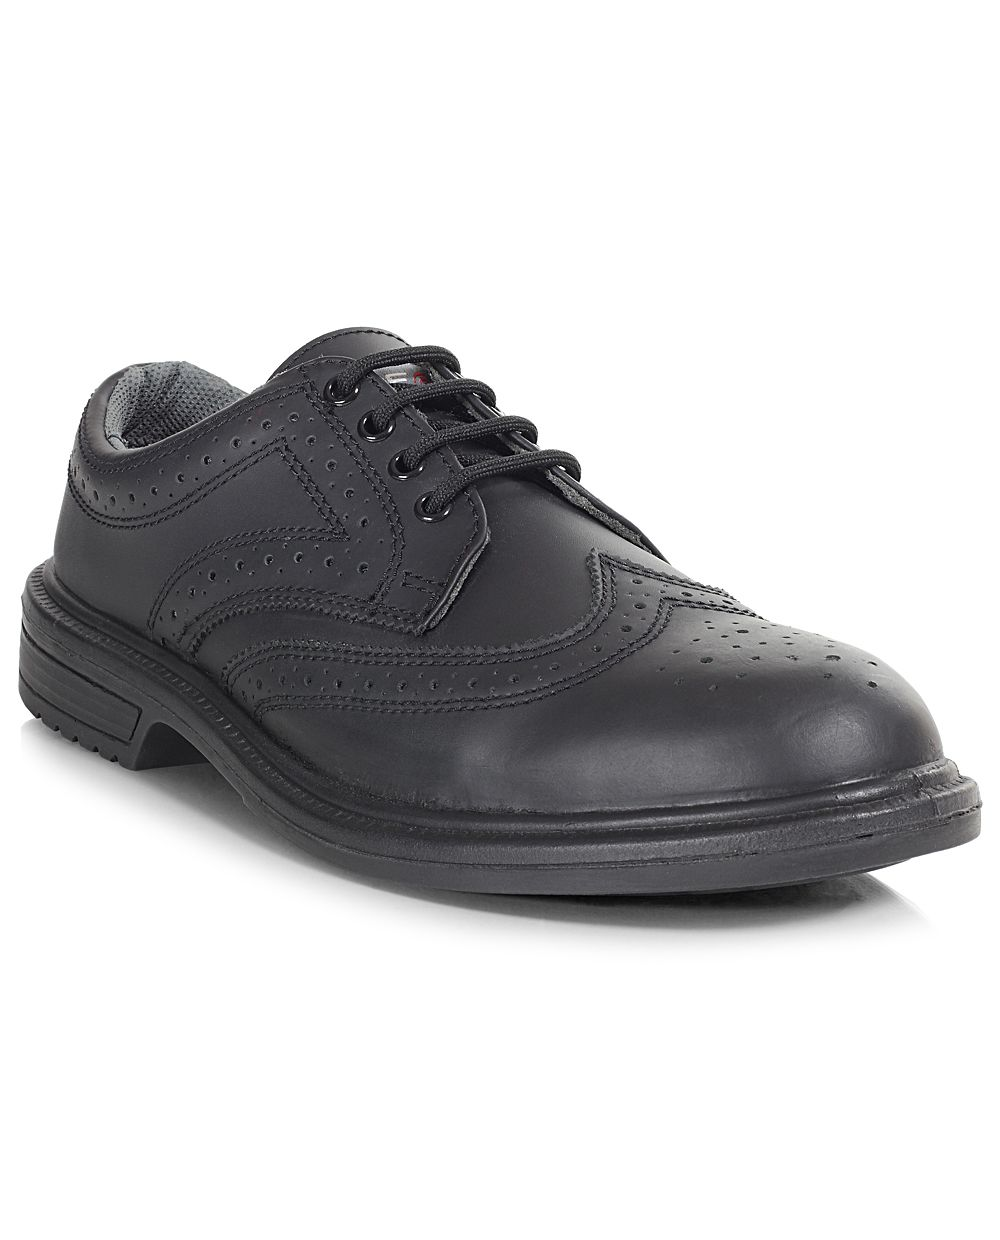 PB69 Executive Brogue c/w Midsole